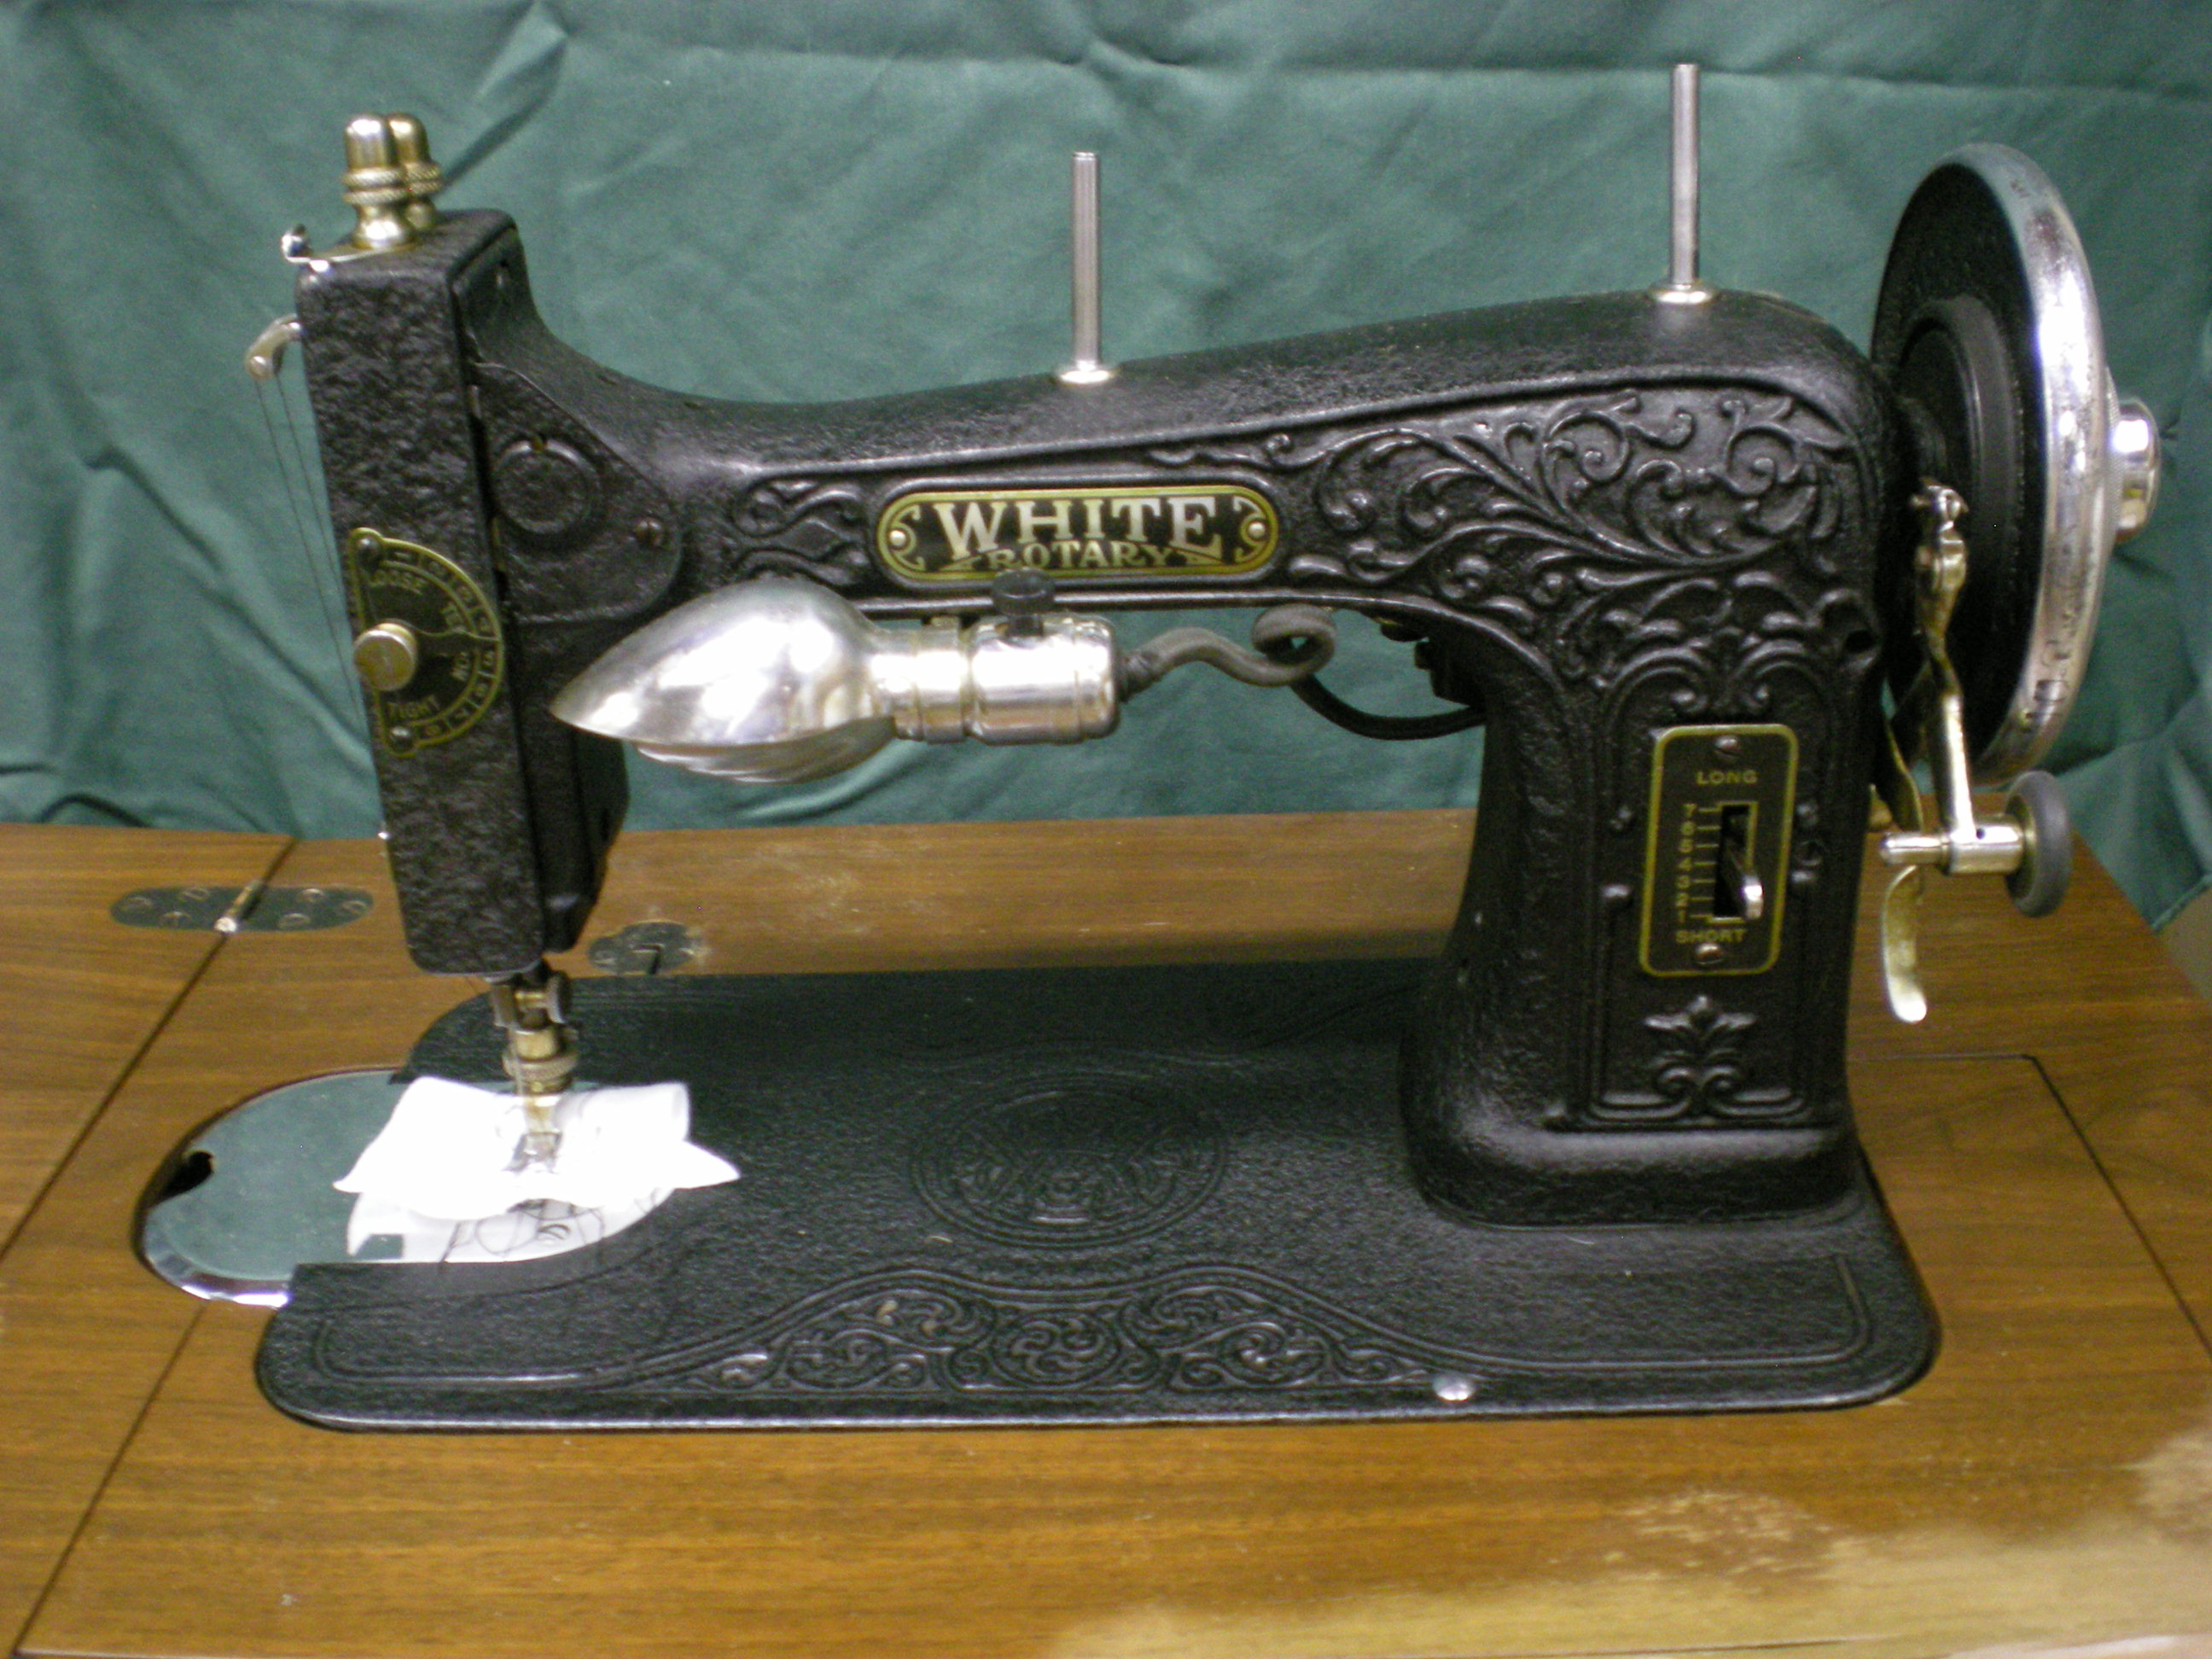 New Home Sewing Machine Vintage Electric